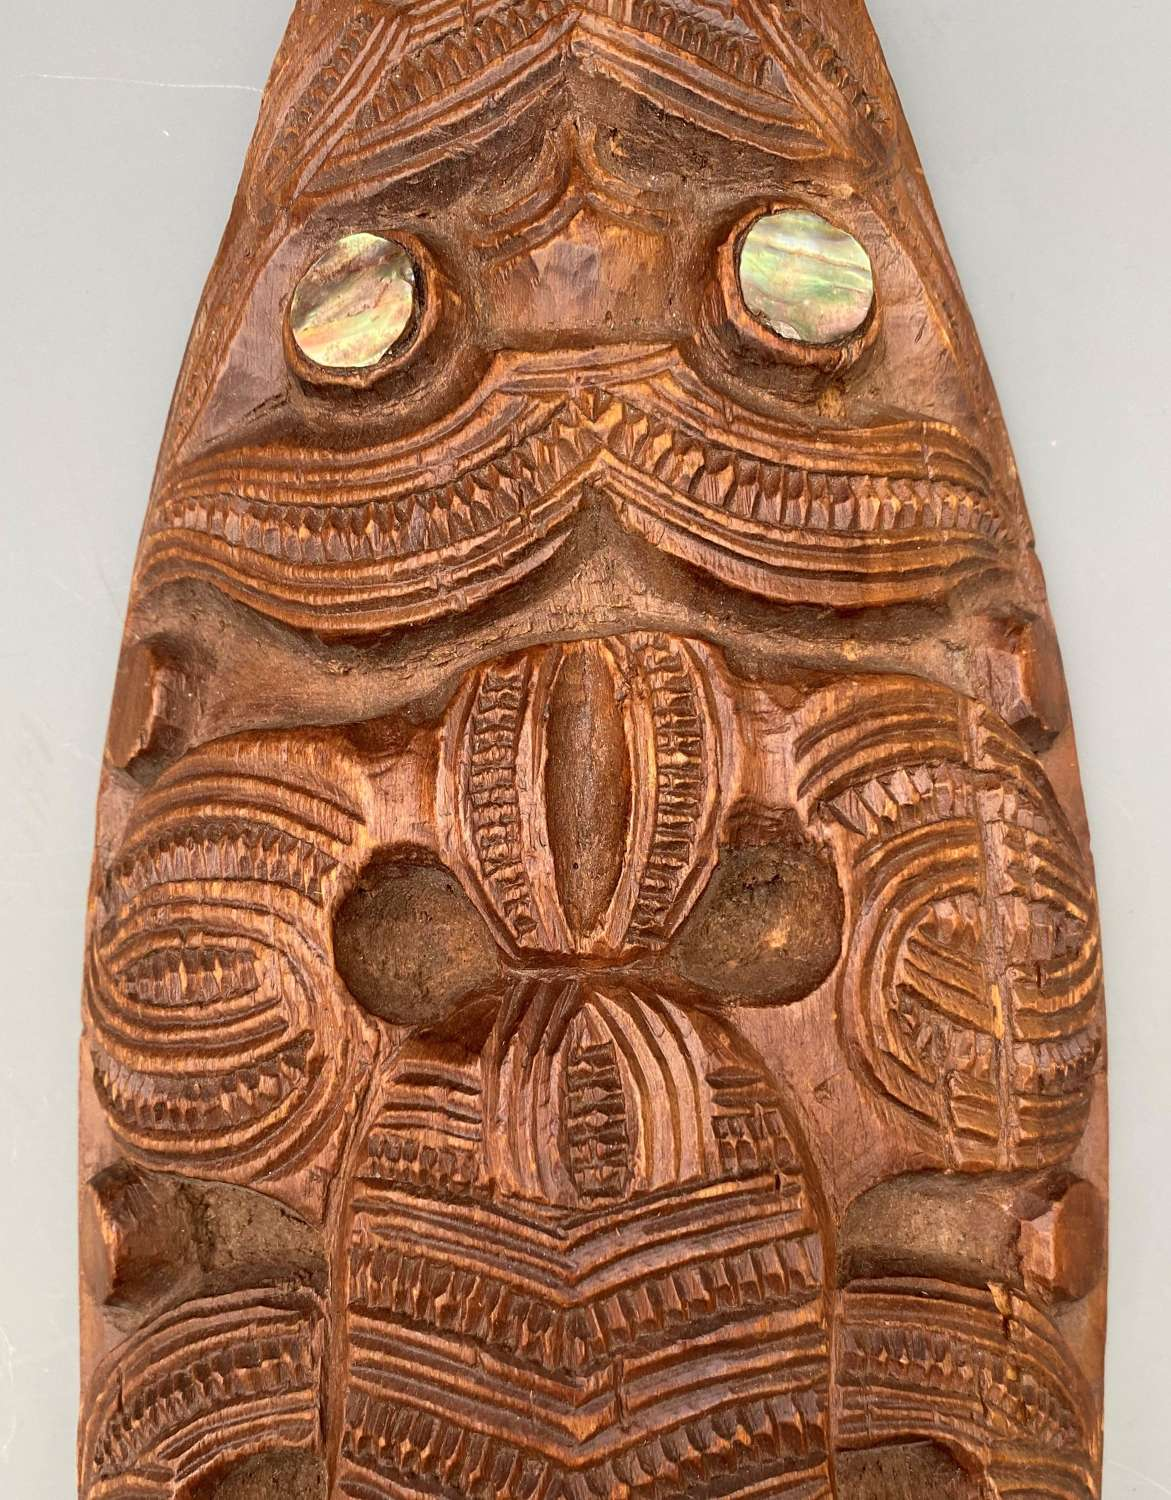 Maori Short Dance Paddle Decorated with Figures. New Zealand